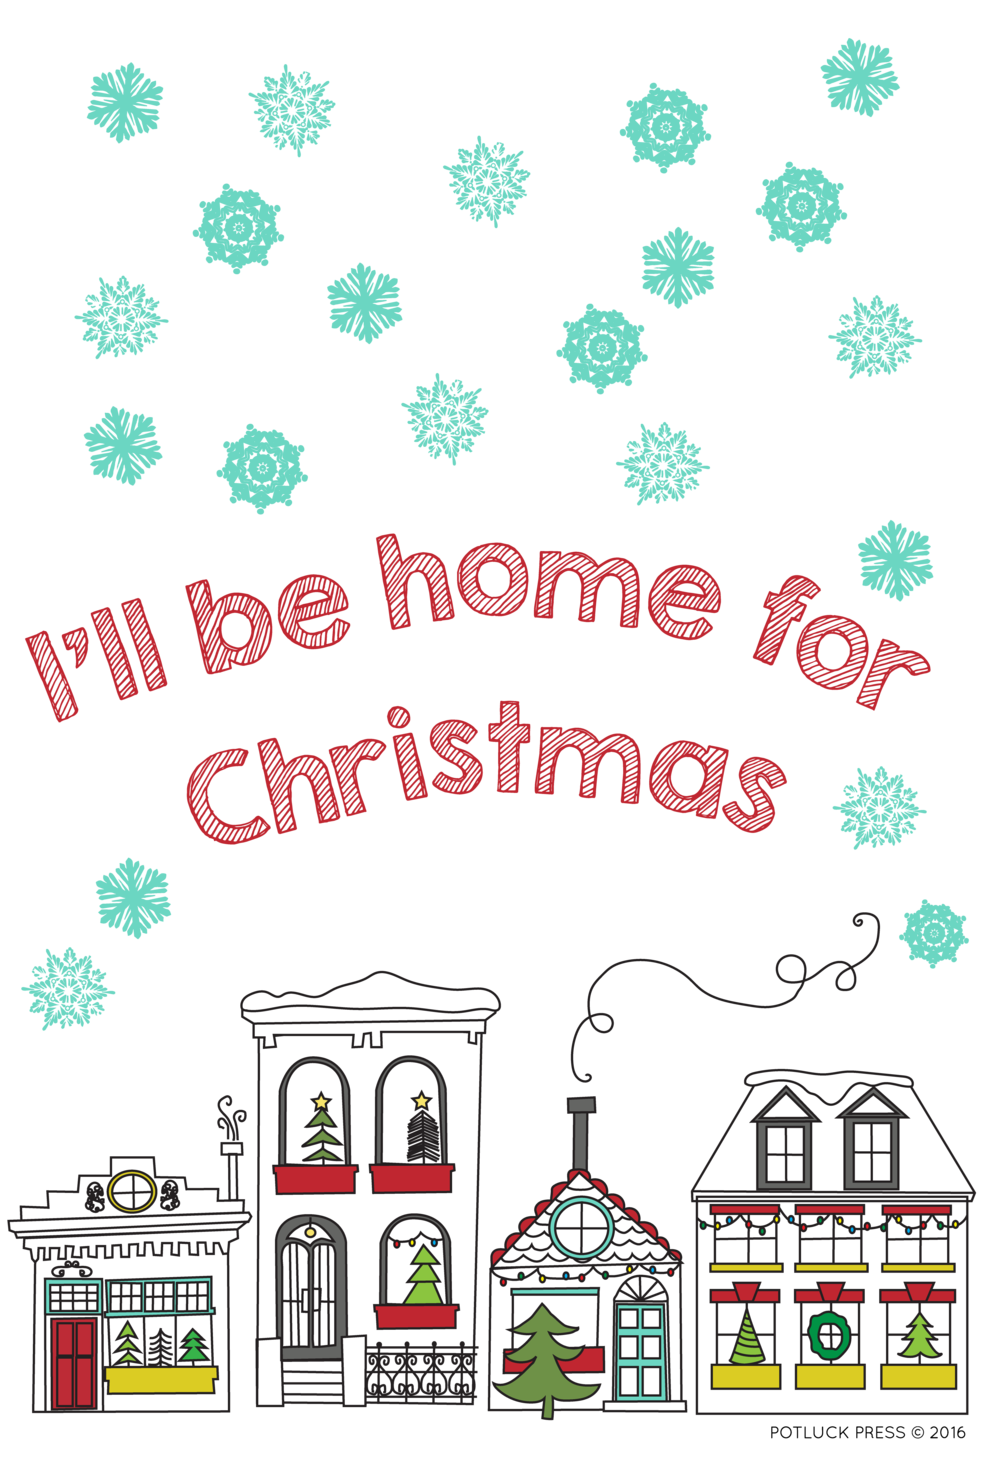 DishTowel_Holiday2016_v2-08.png